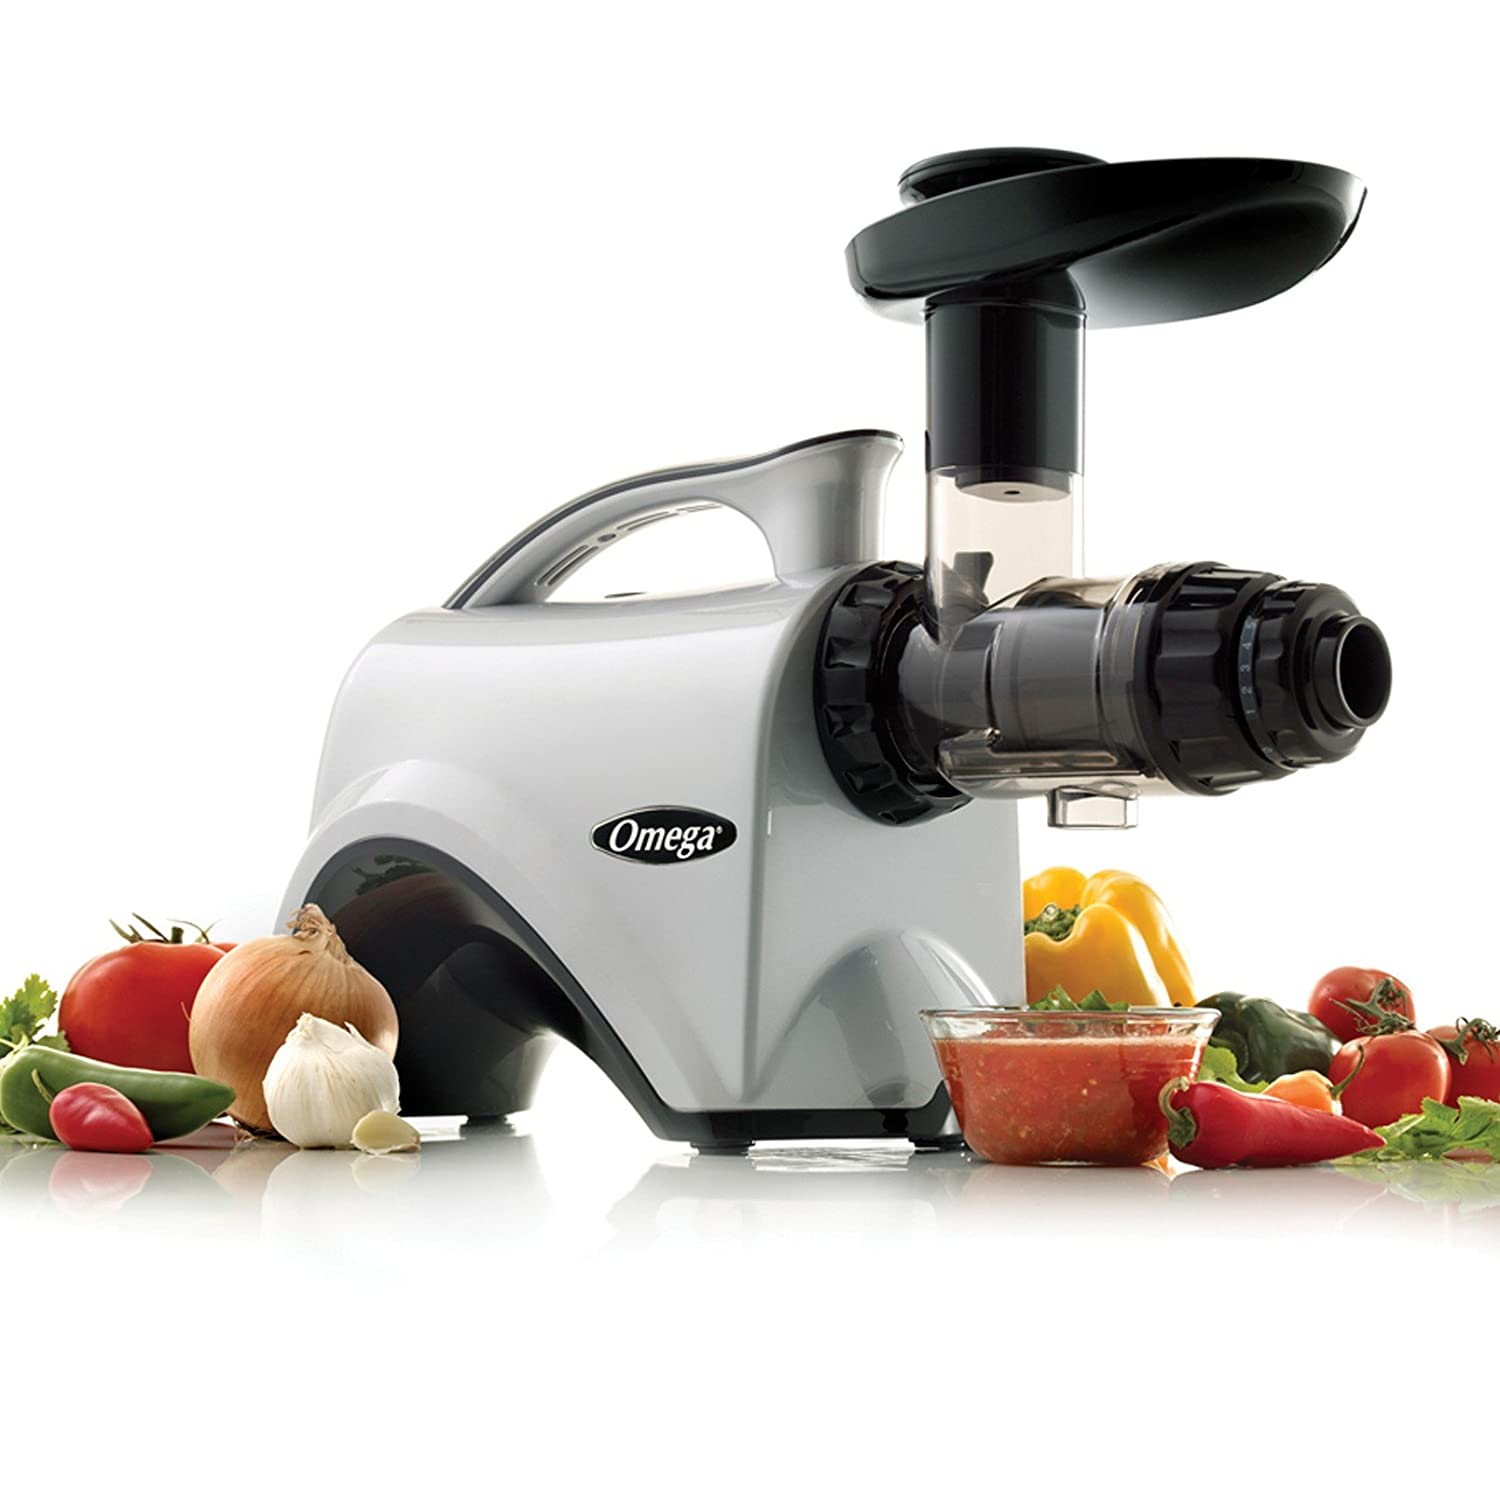 Omega cold press masticating juicer